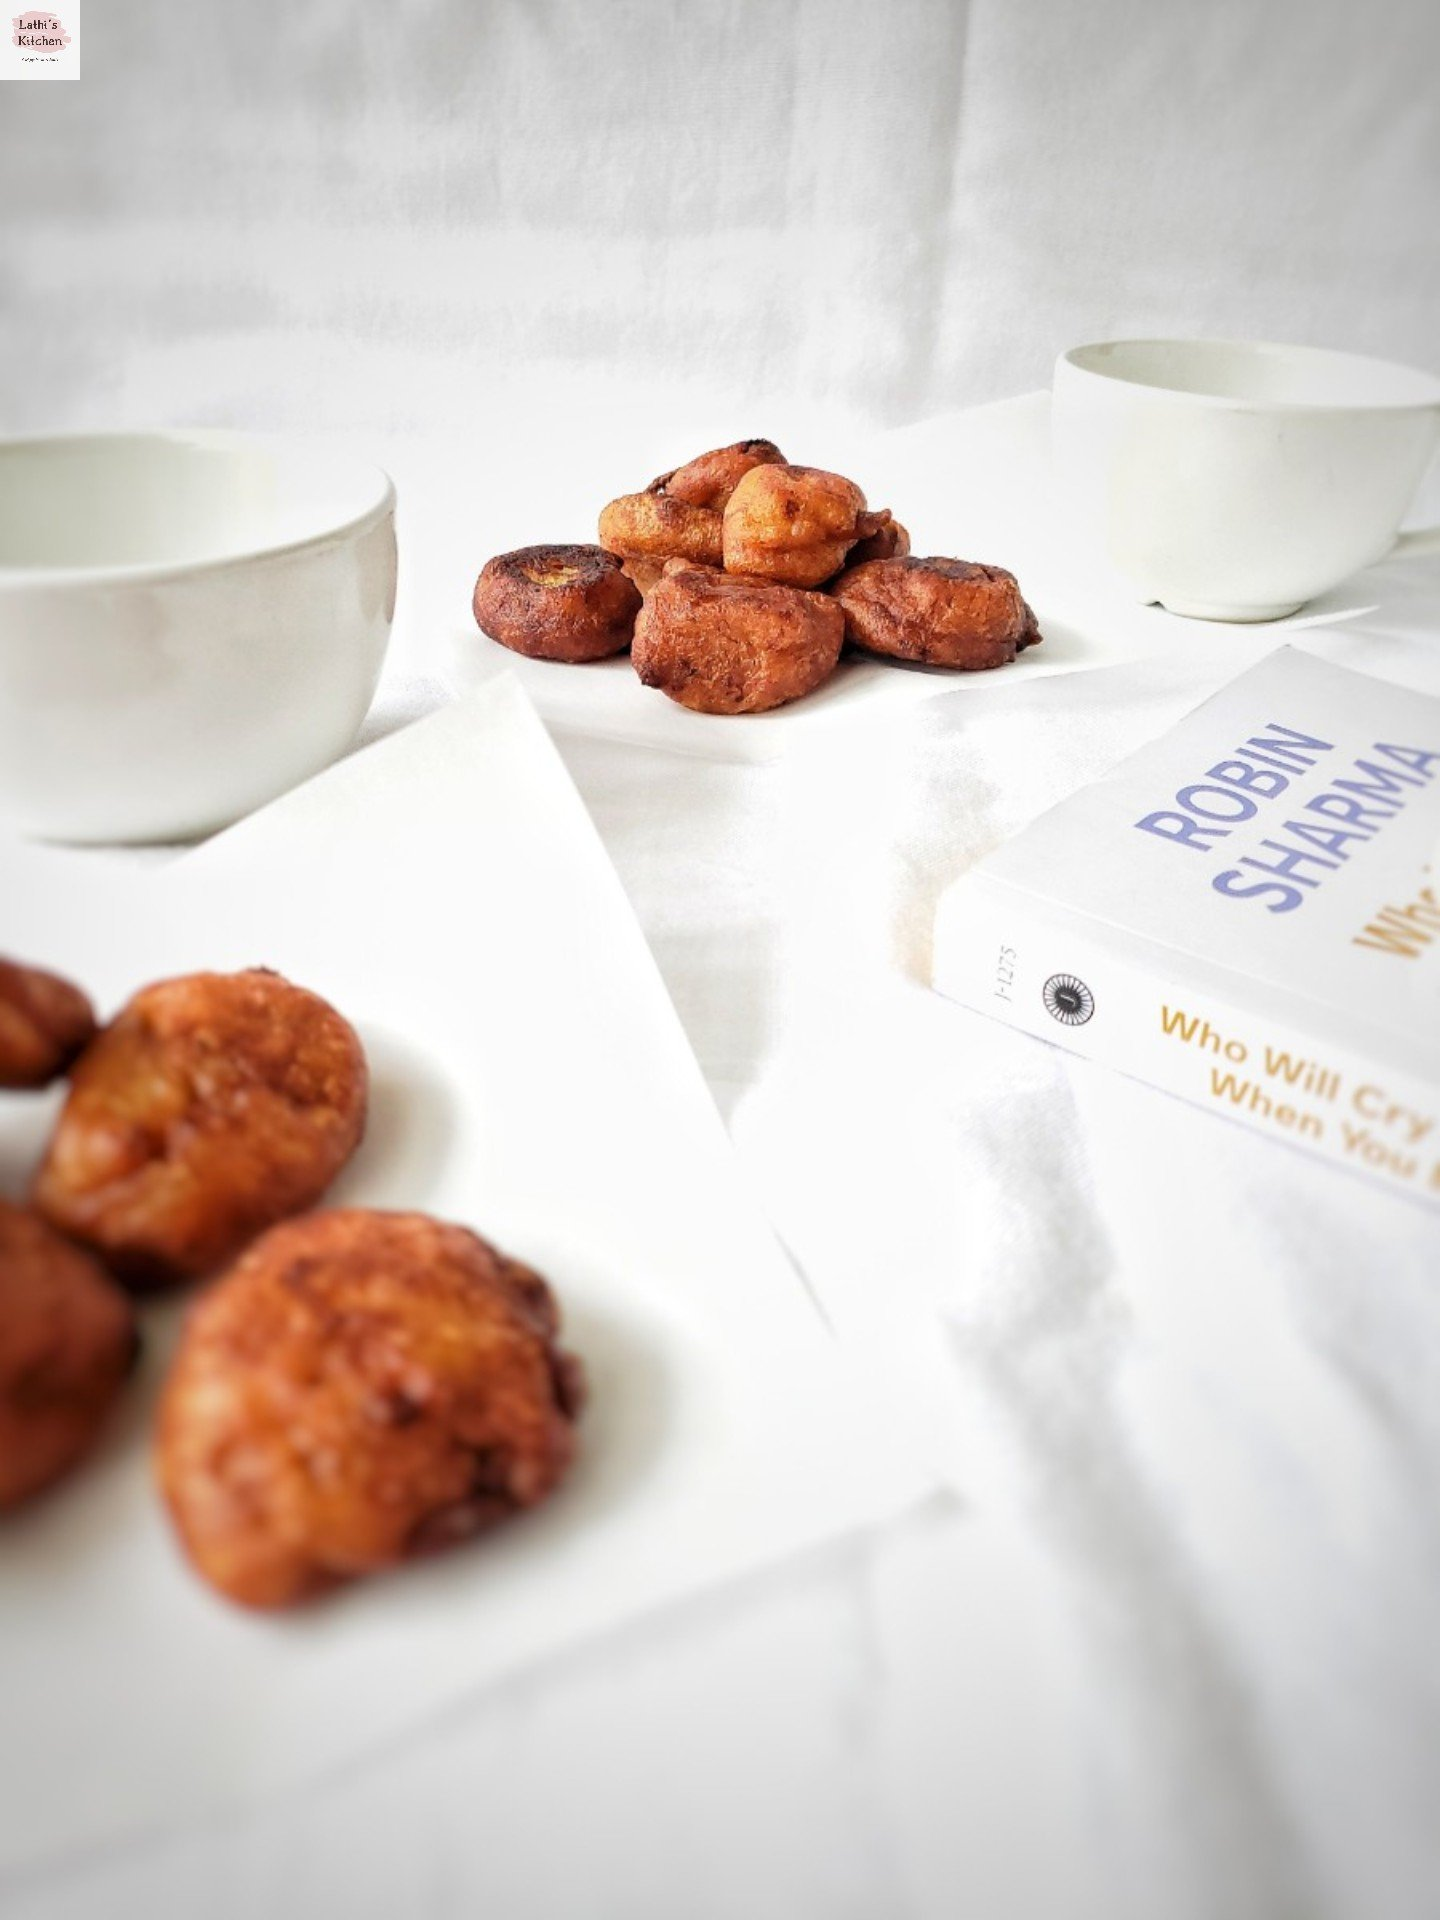 Banana fritters,fritters,whole wheat banana fritters,snack,easy snack,banana